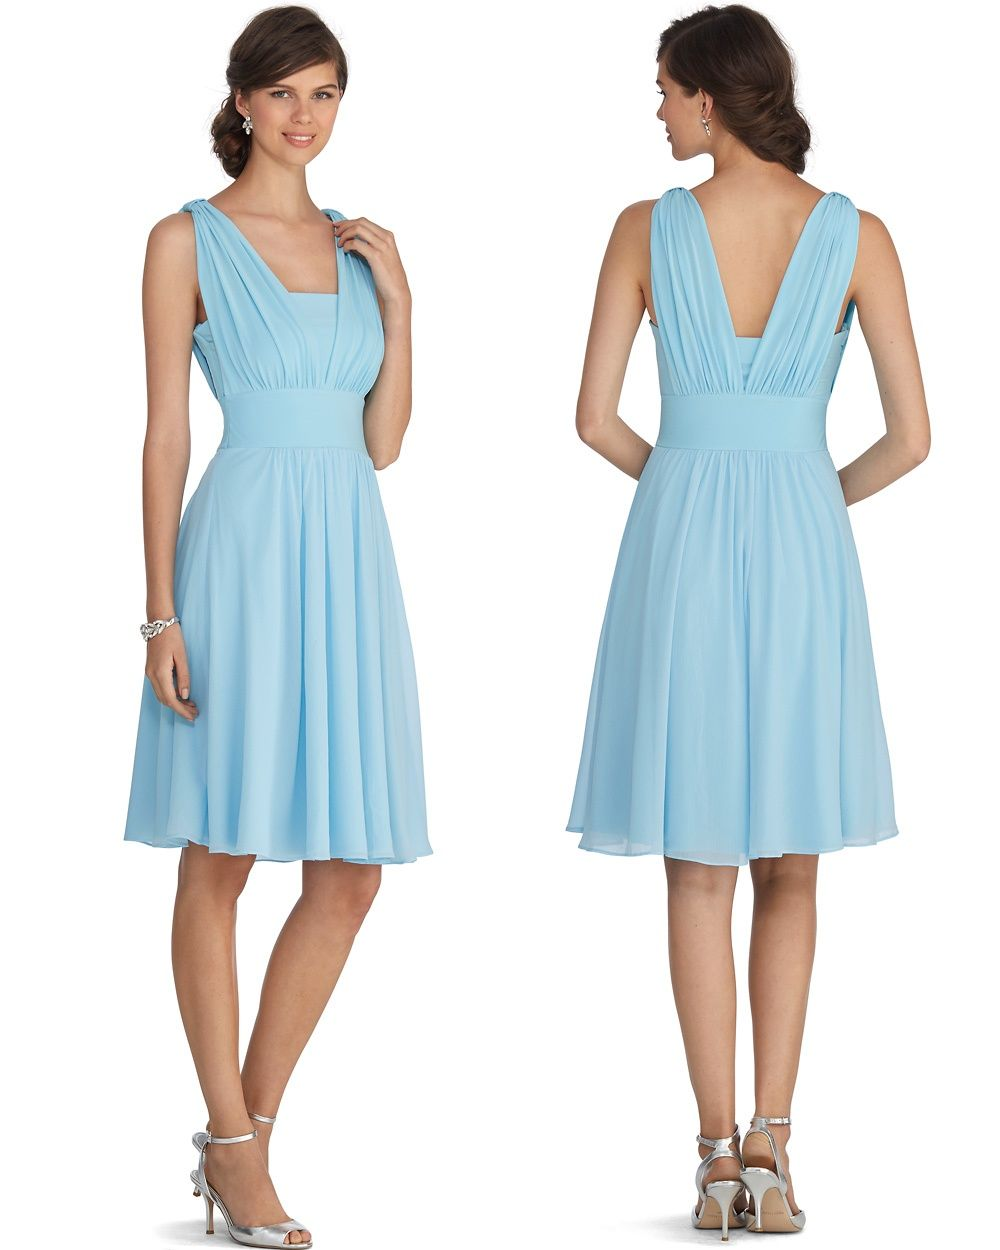 Sapphire blue bridesmaid dresses strapless and with straps sapphire blue bridesmaid dresses strapless and with straps wedding ideas for the future pinterest sapphire wedding and weddings ombrellifo Images